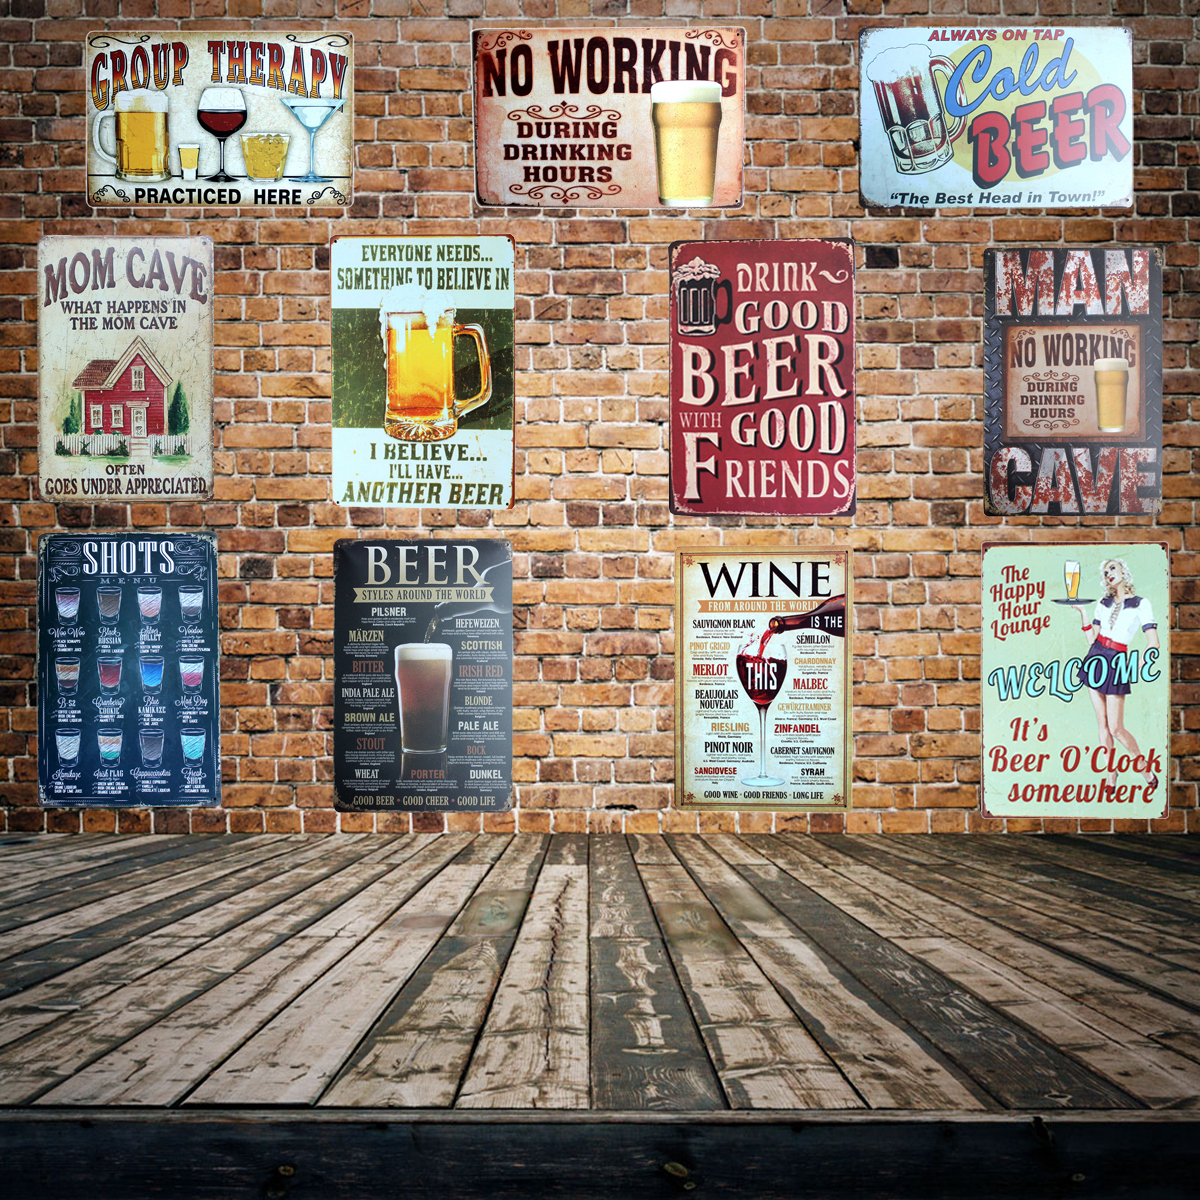 NOTTING HILL BREWERY Vintage Metal Pub Sign3D Embossed SteelHome Bar